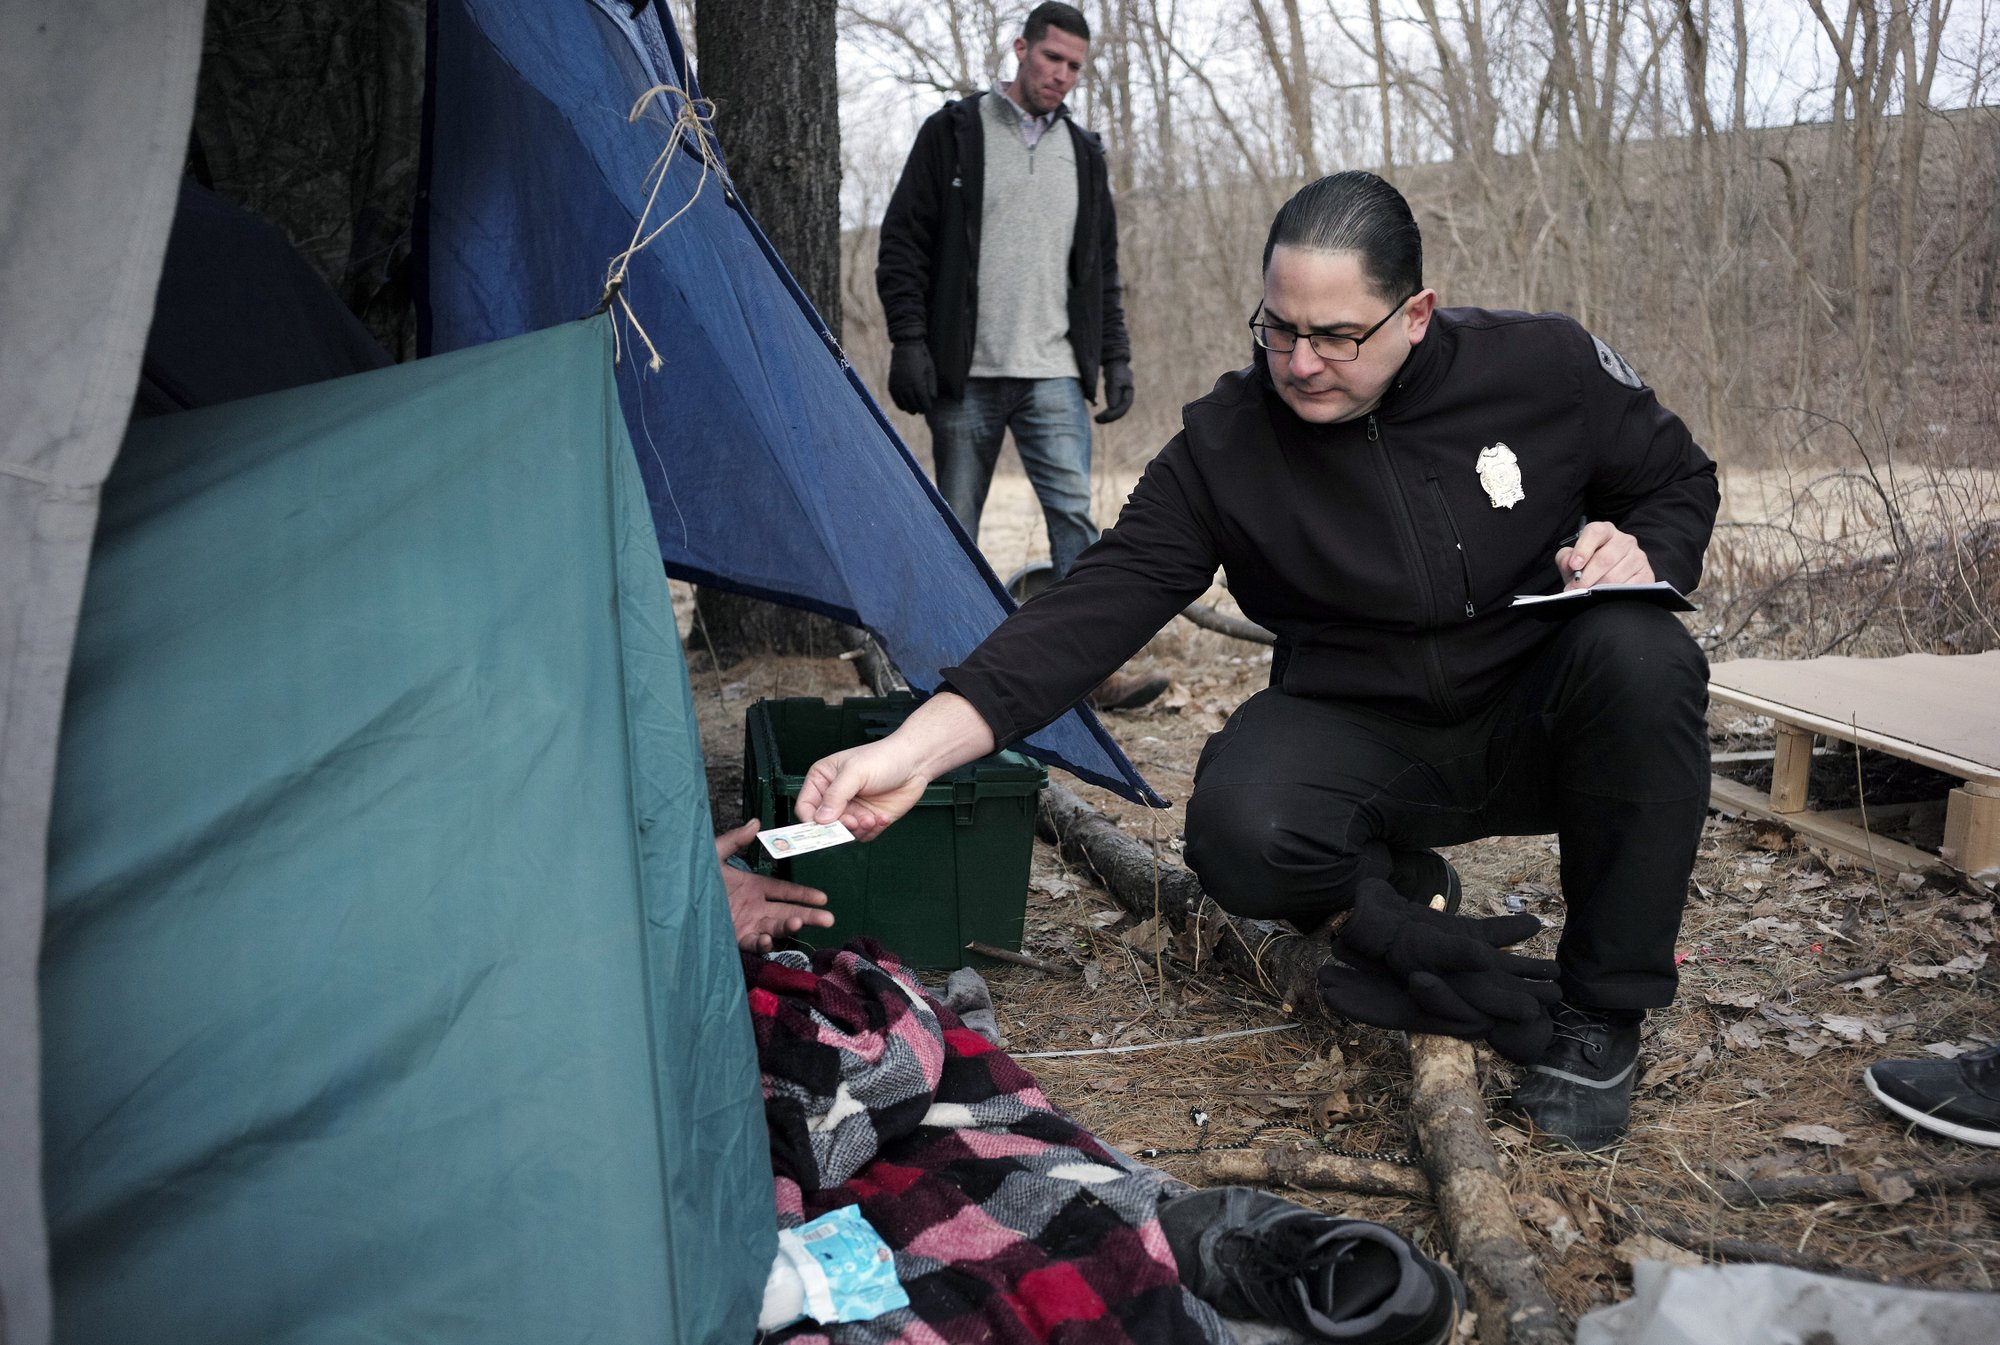 Communities reach out to homeless as liver disease surges